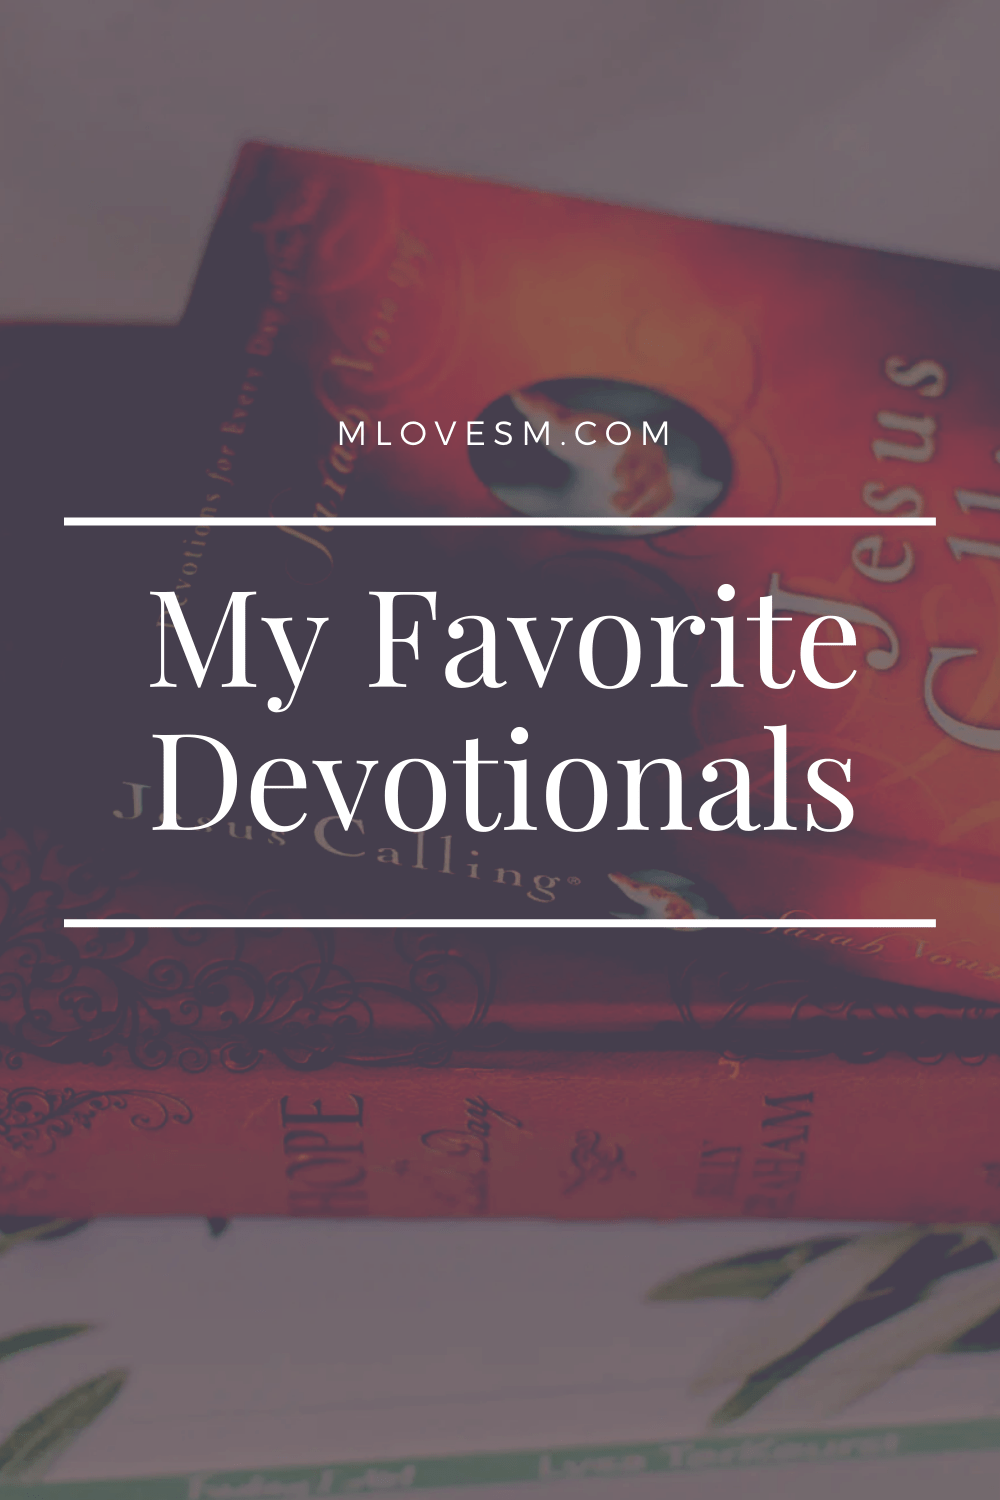 Here are some of my favorite devotionals! - M Loves M @marmar